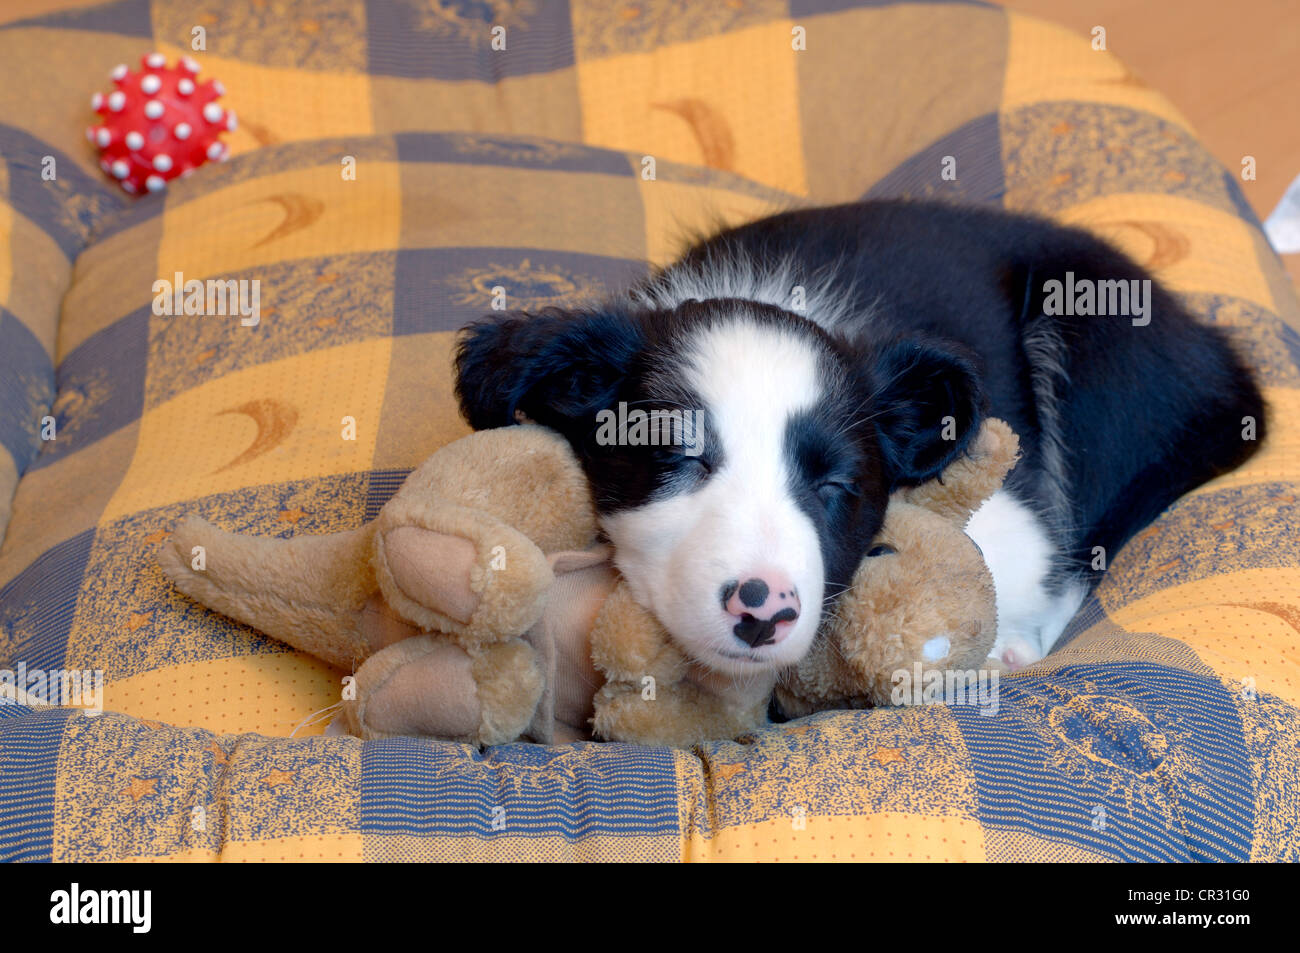 Border Collie, puppy, lying on a cuddly toy on a dog bed, asleep - Stock Image